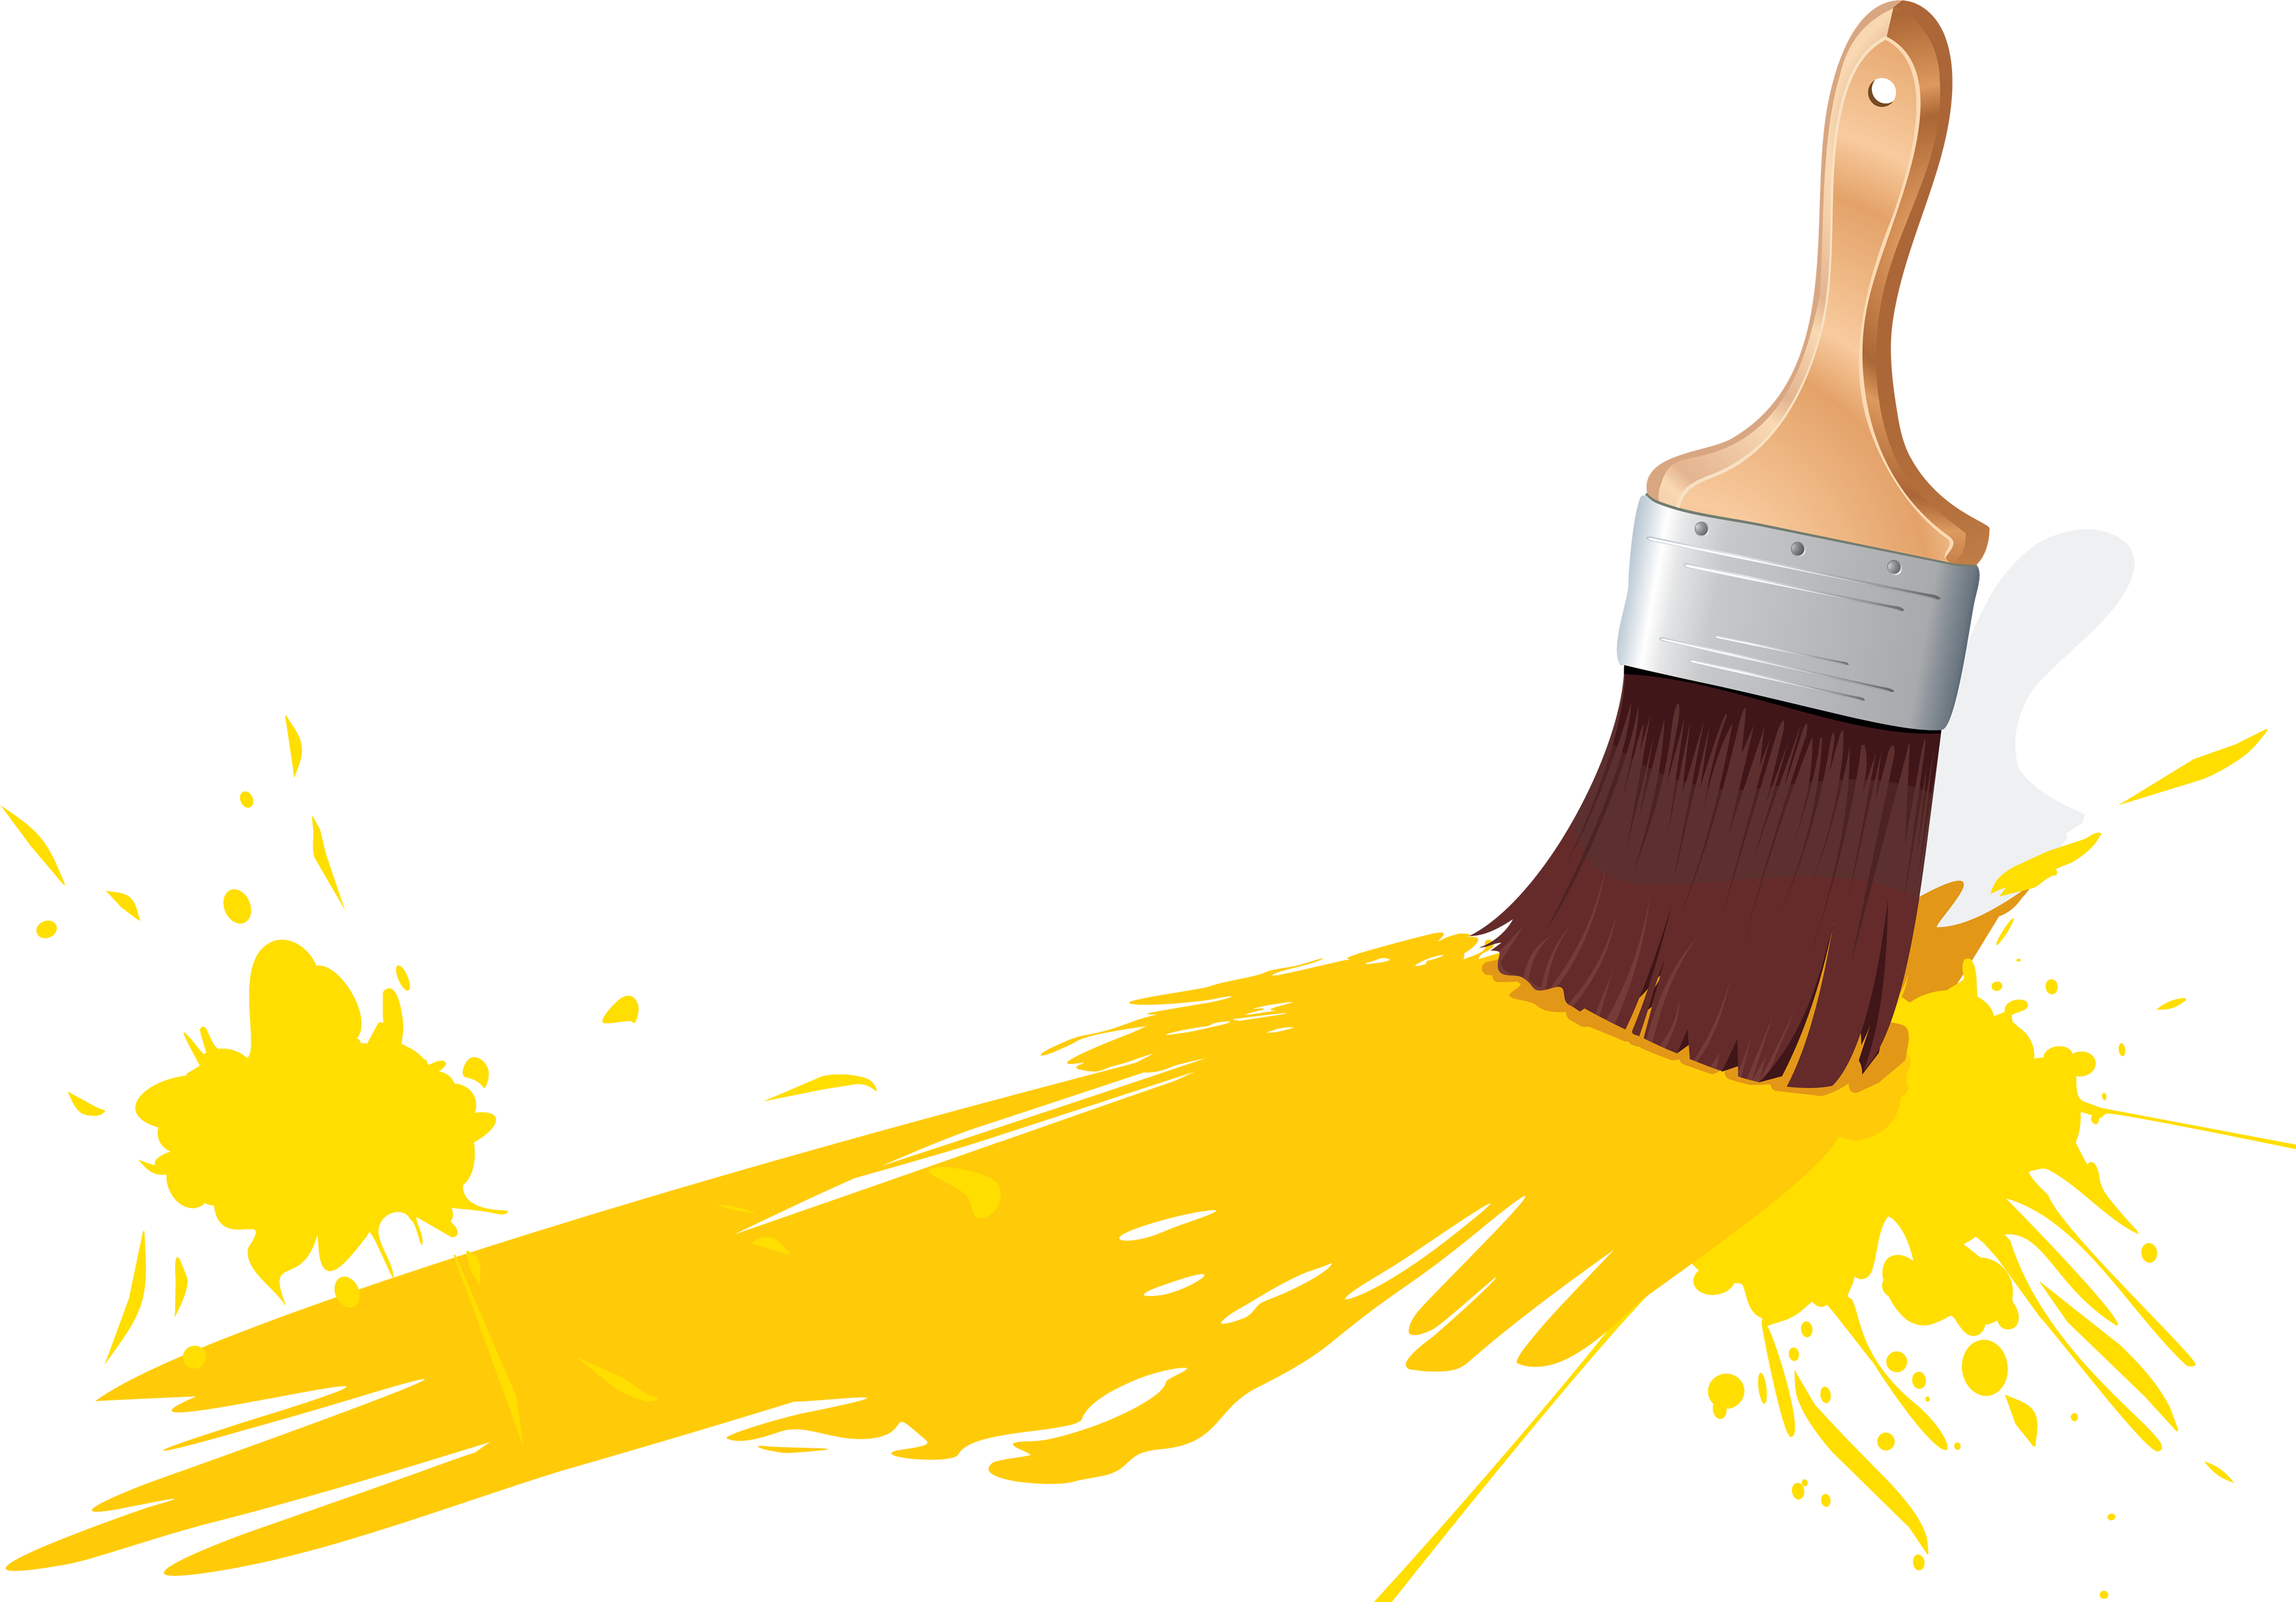 Construction clipart painter. Brushes png images free